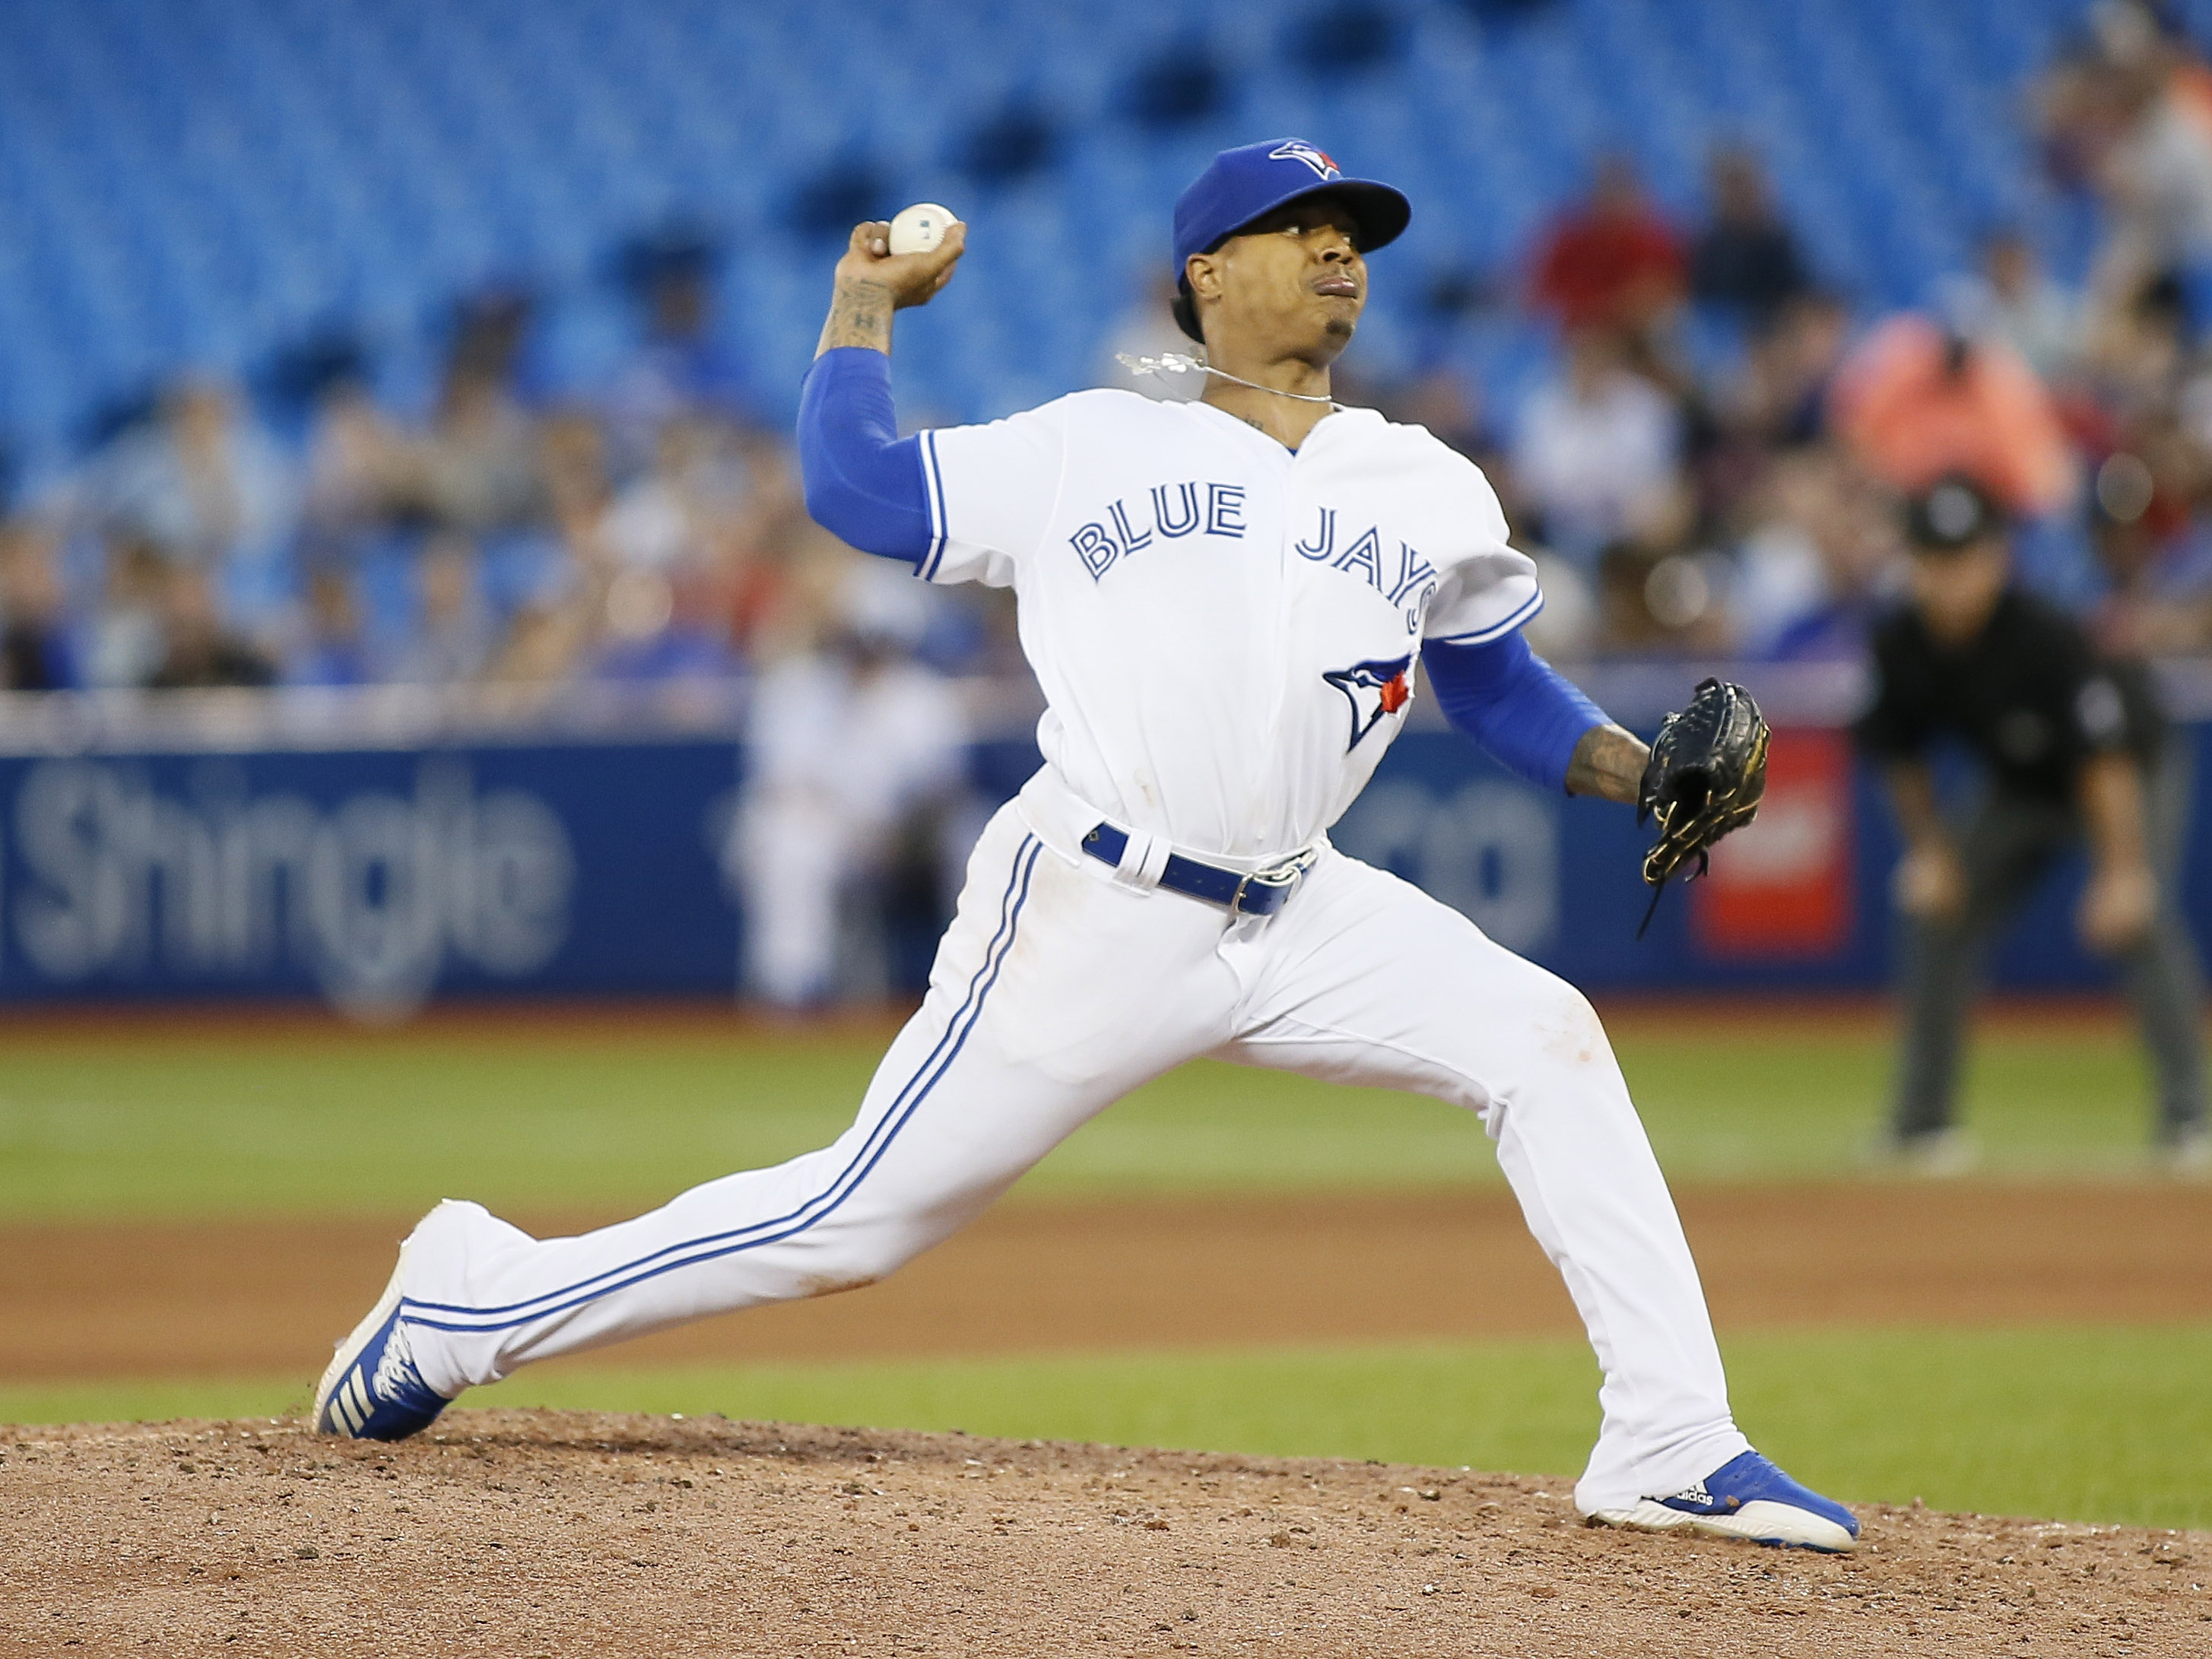 A thought experiment on grading the Marcus Stroman trade